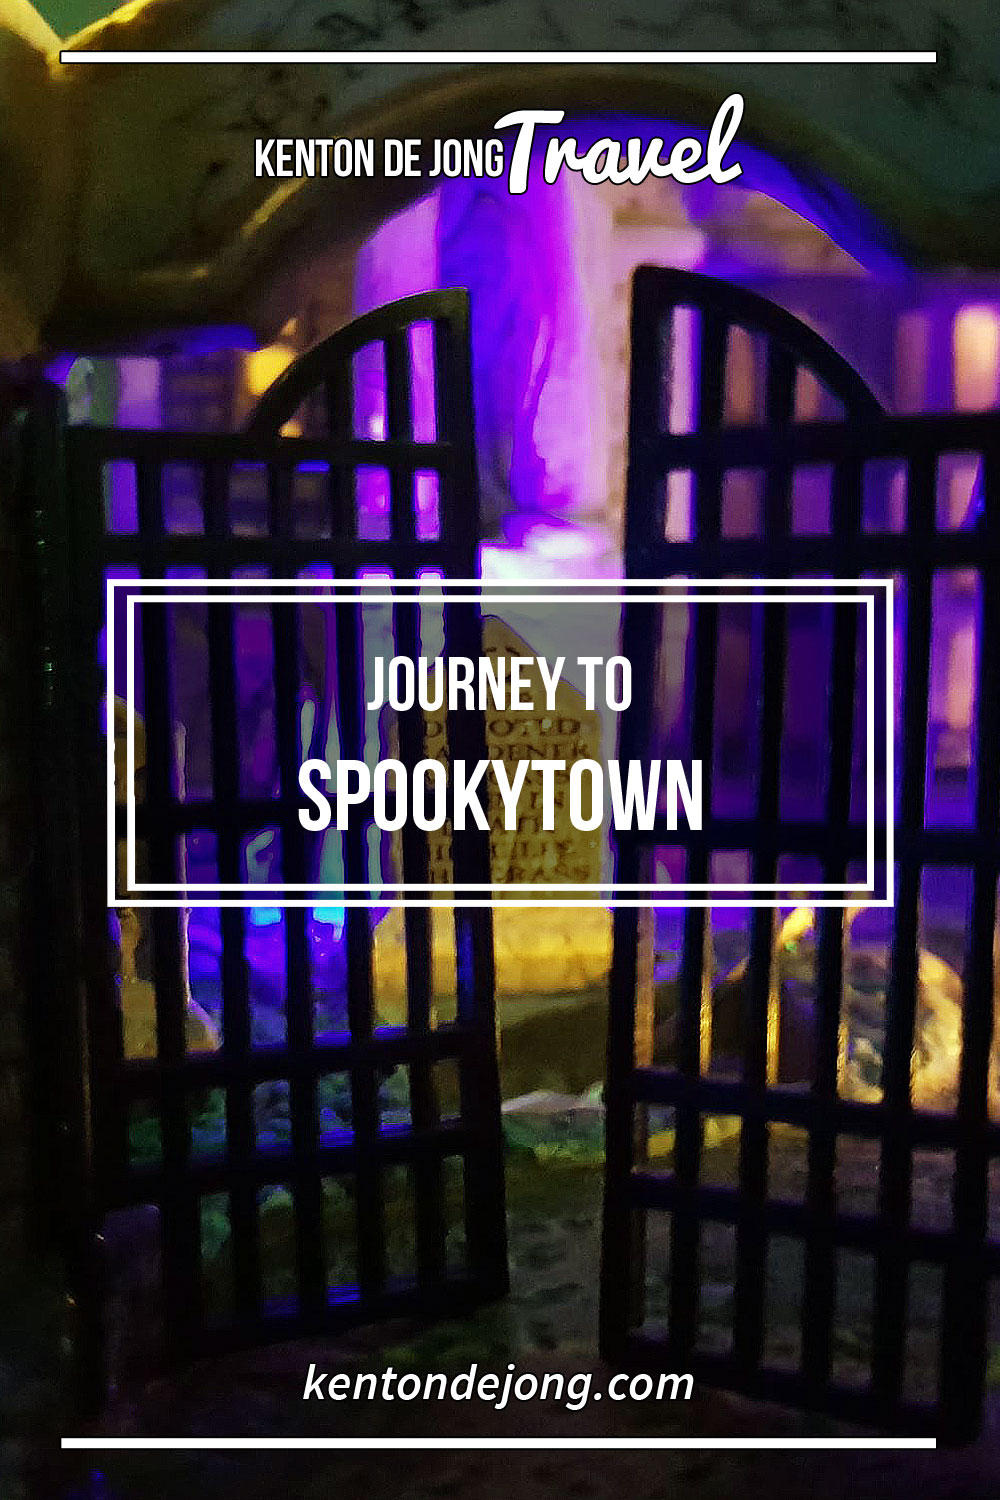 Journey to Spookytown